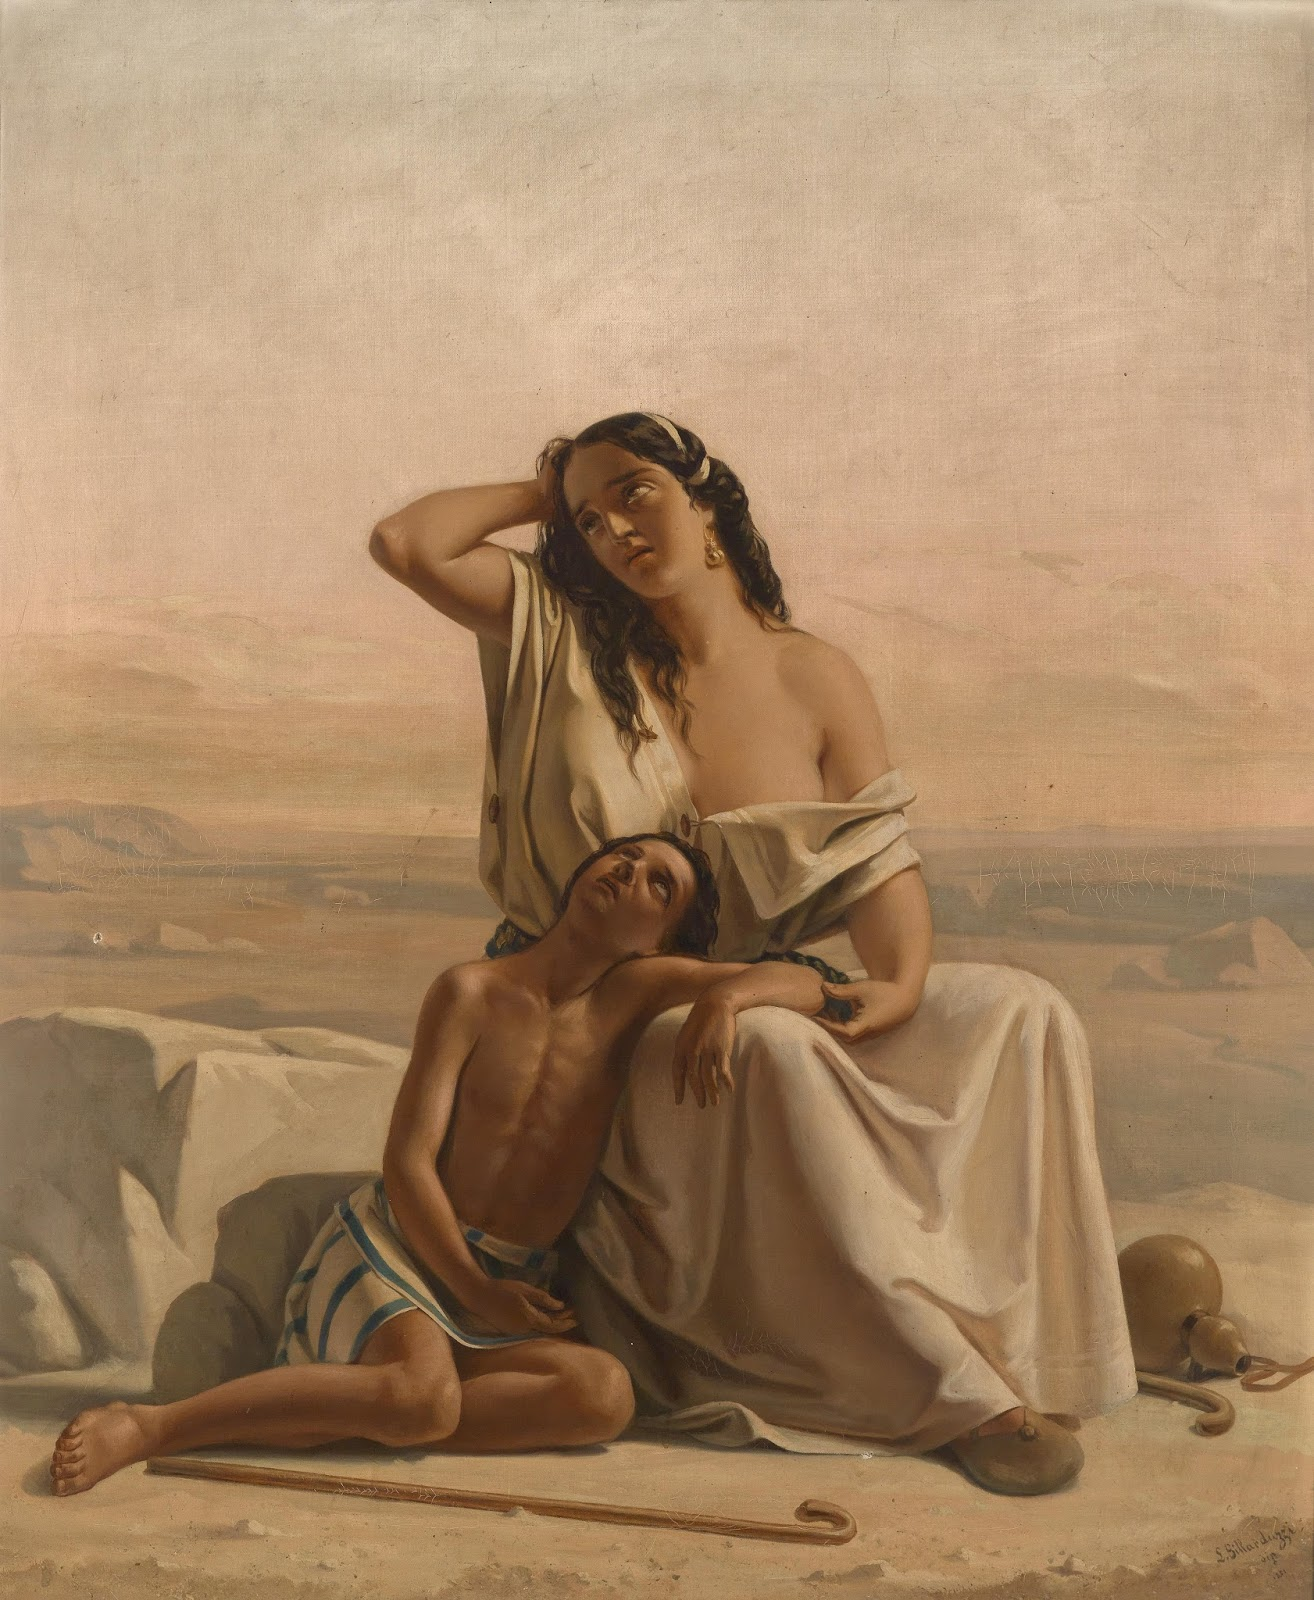 Hagar and Ishmael in the desert, Luigi Alois Gillarduzzi 1851, oil on canvas